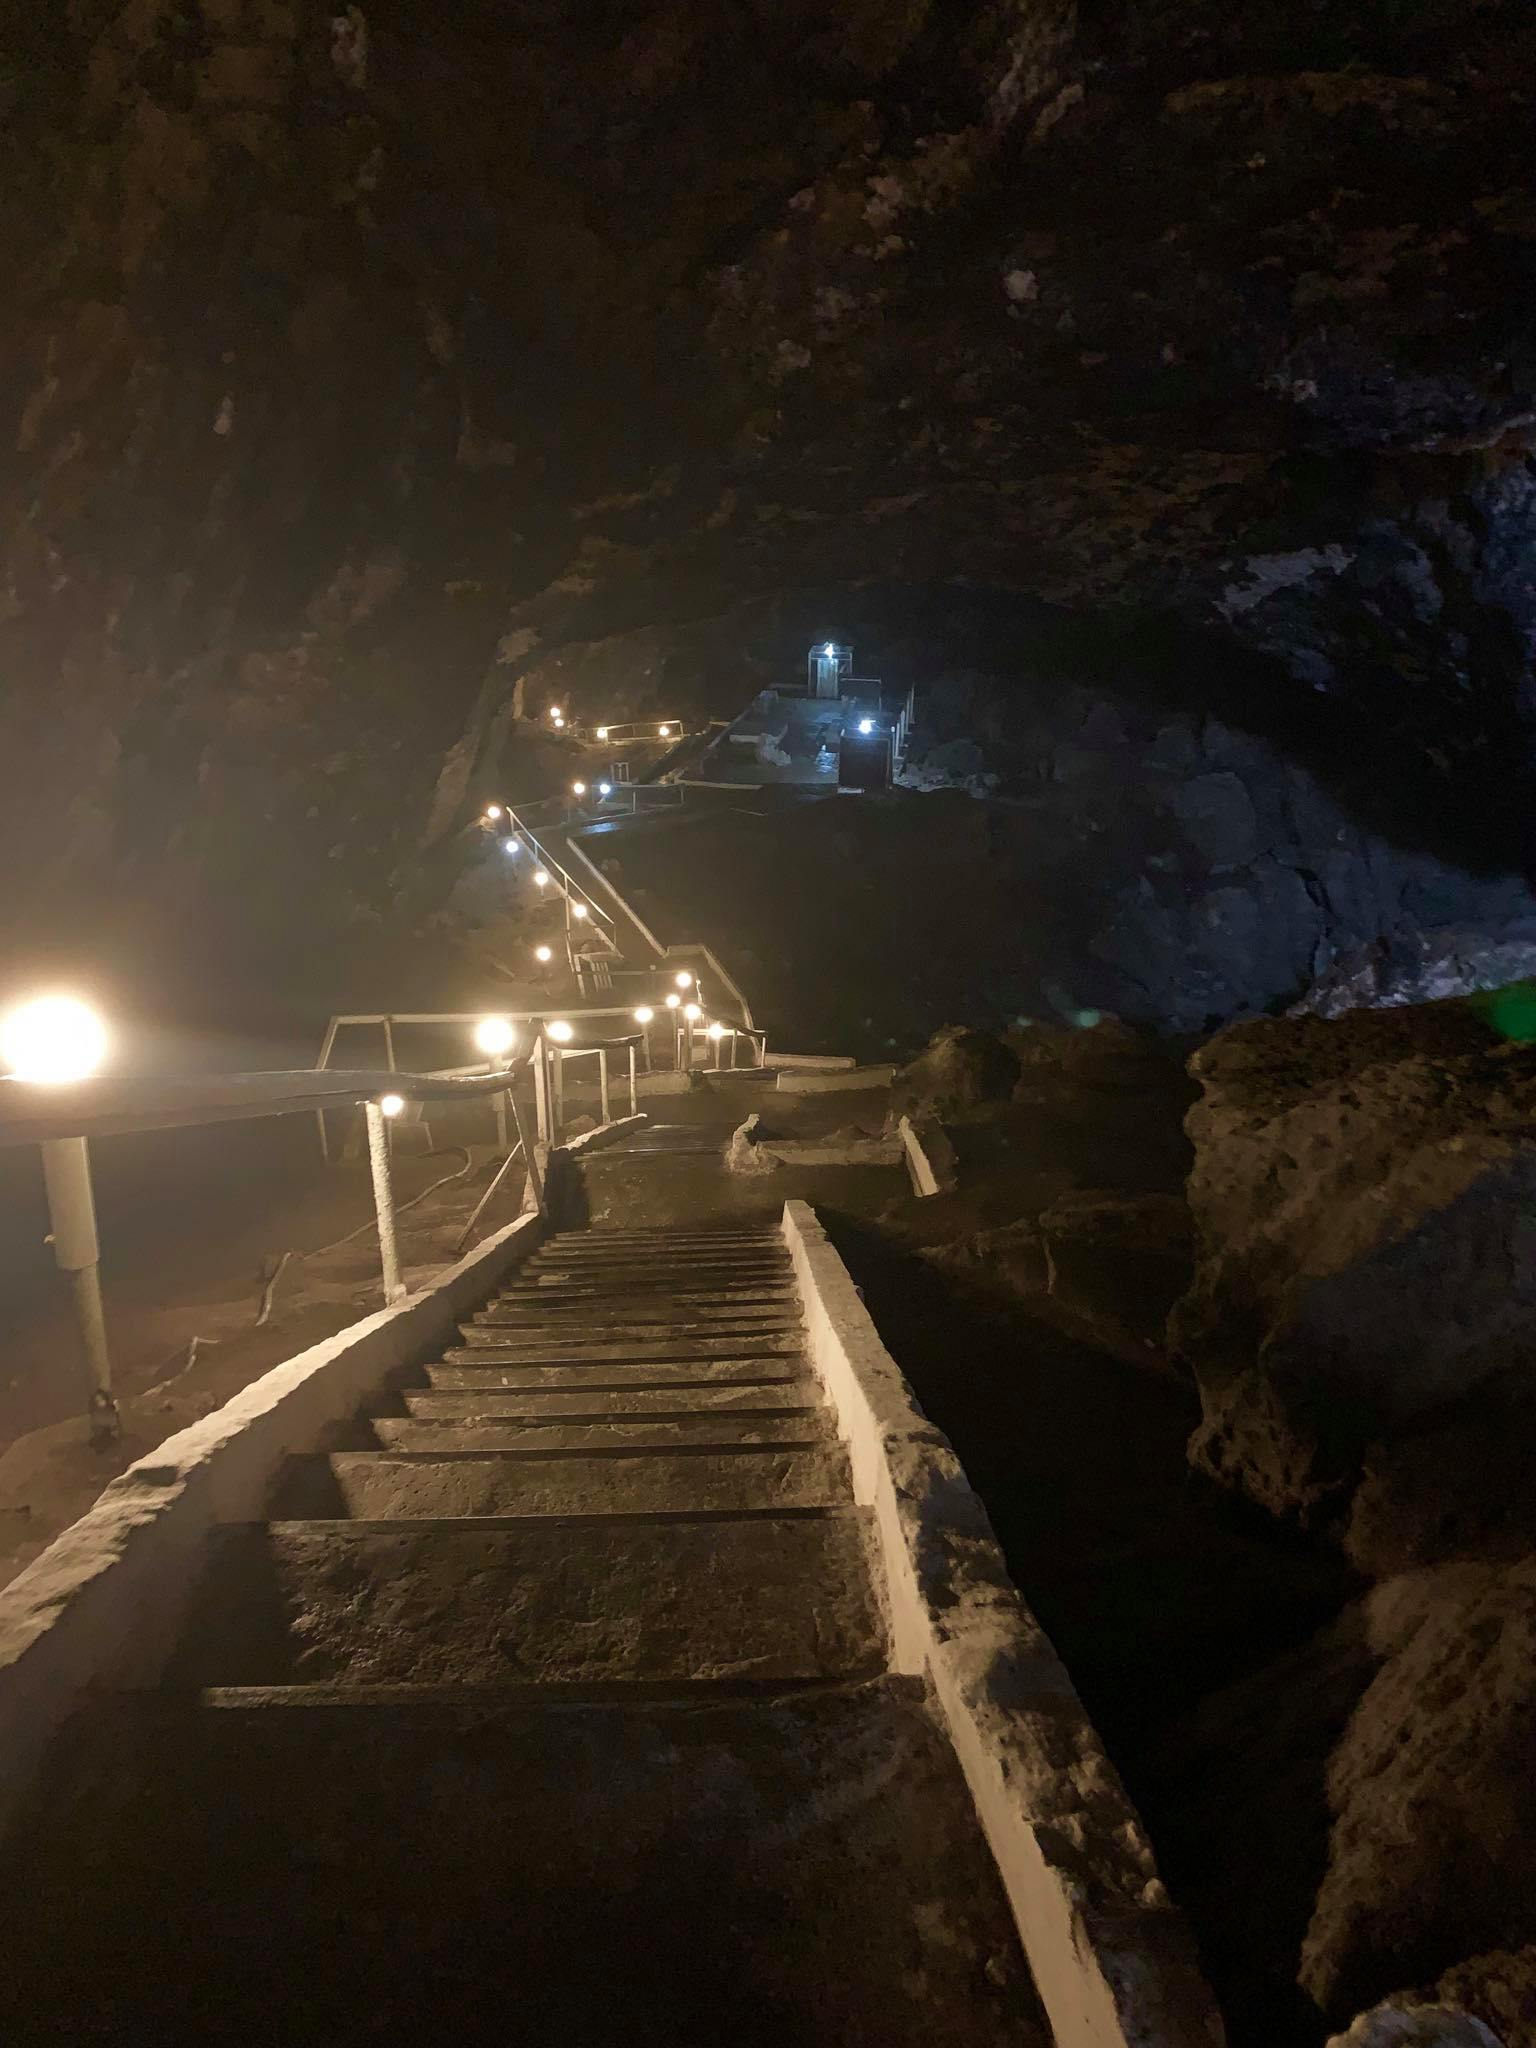 Kach Solo Travels in 2019 Visited the Underground Cave of Kov Ata3.jpg